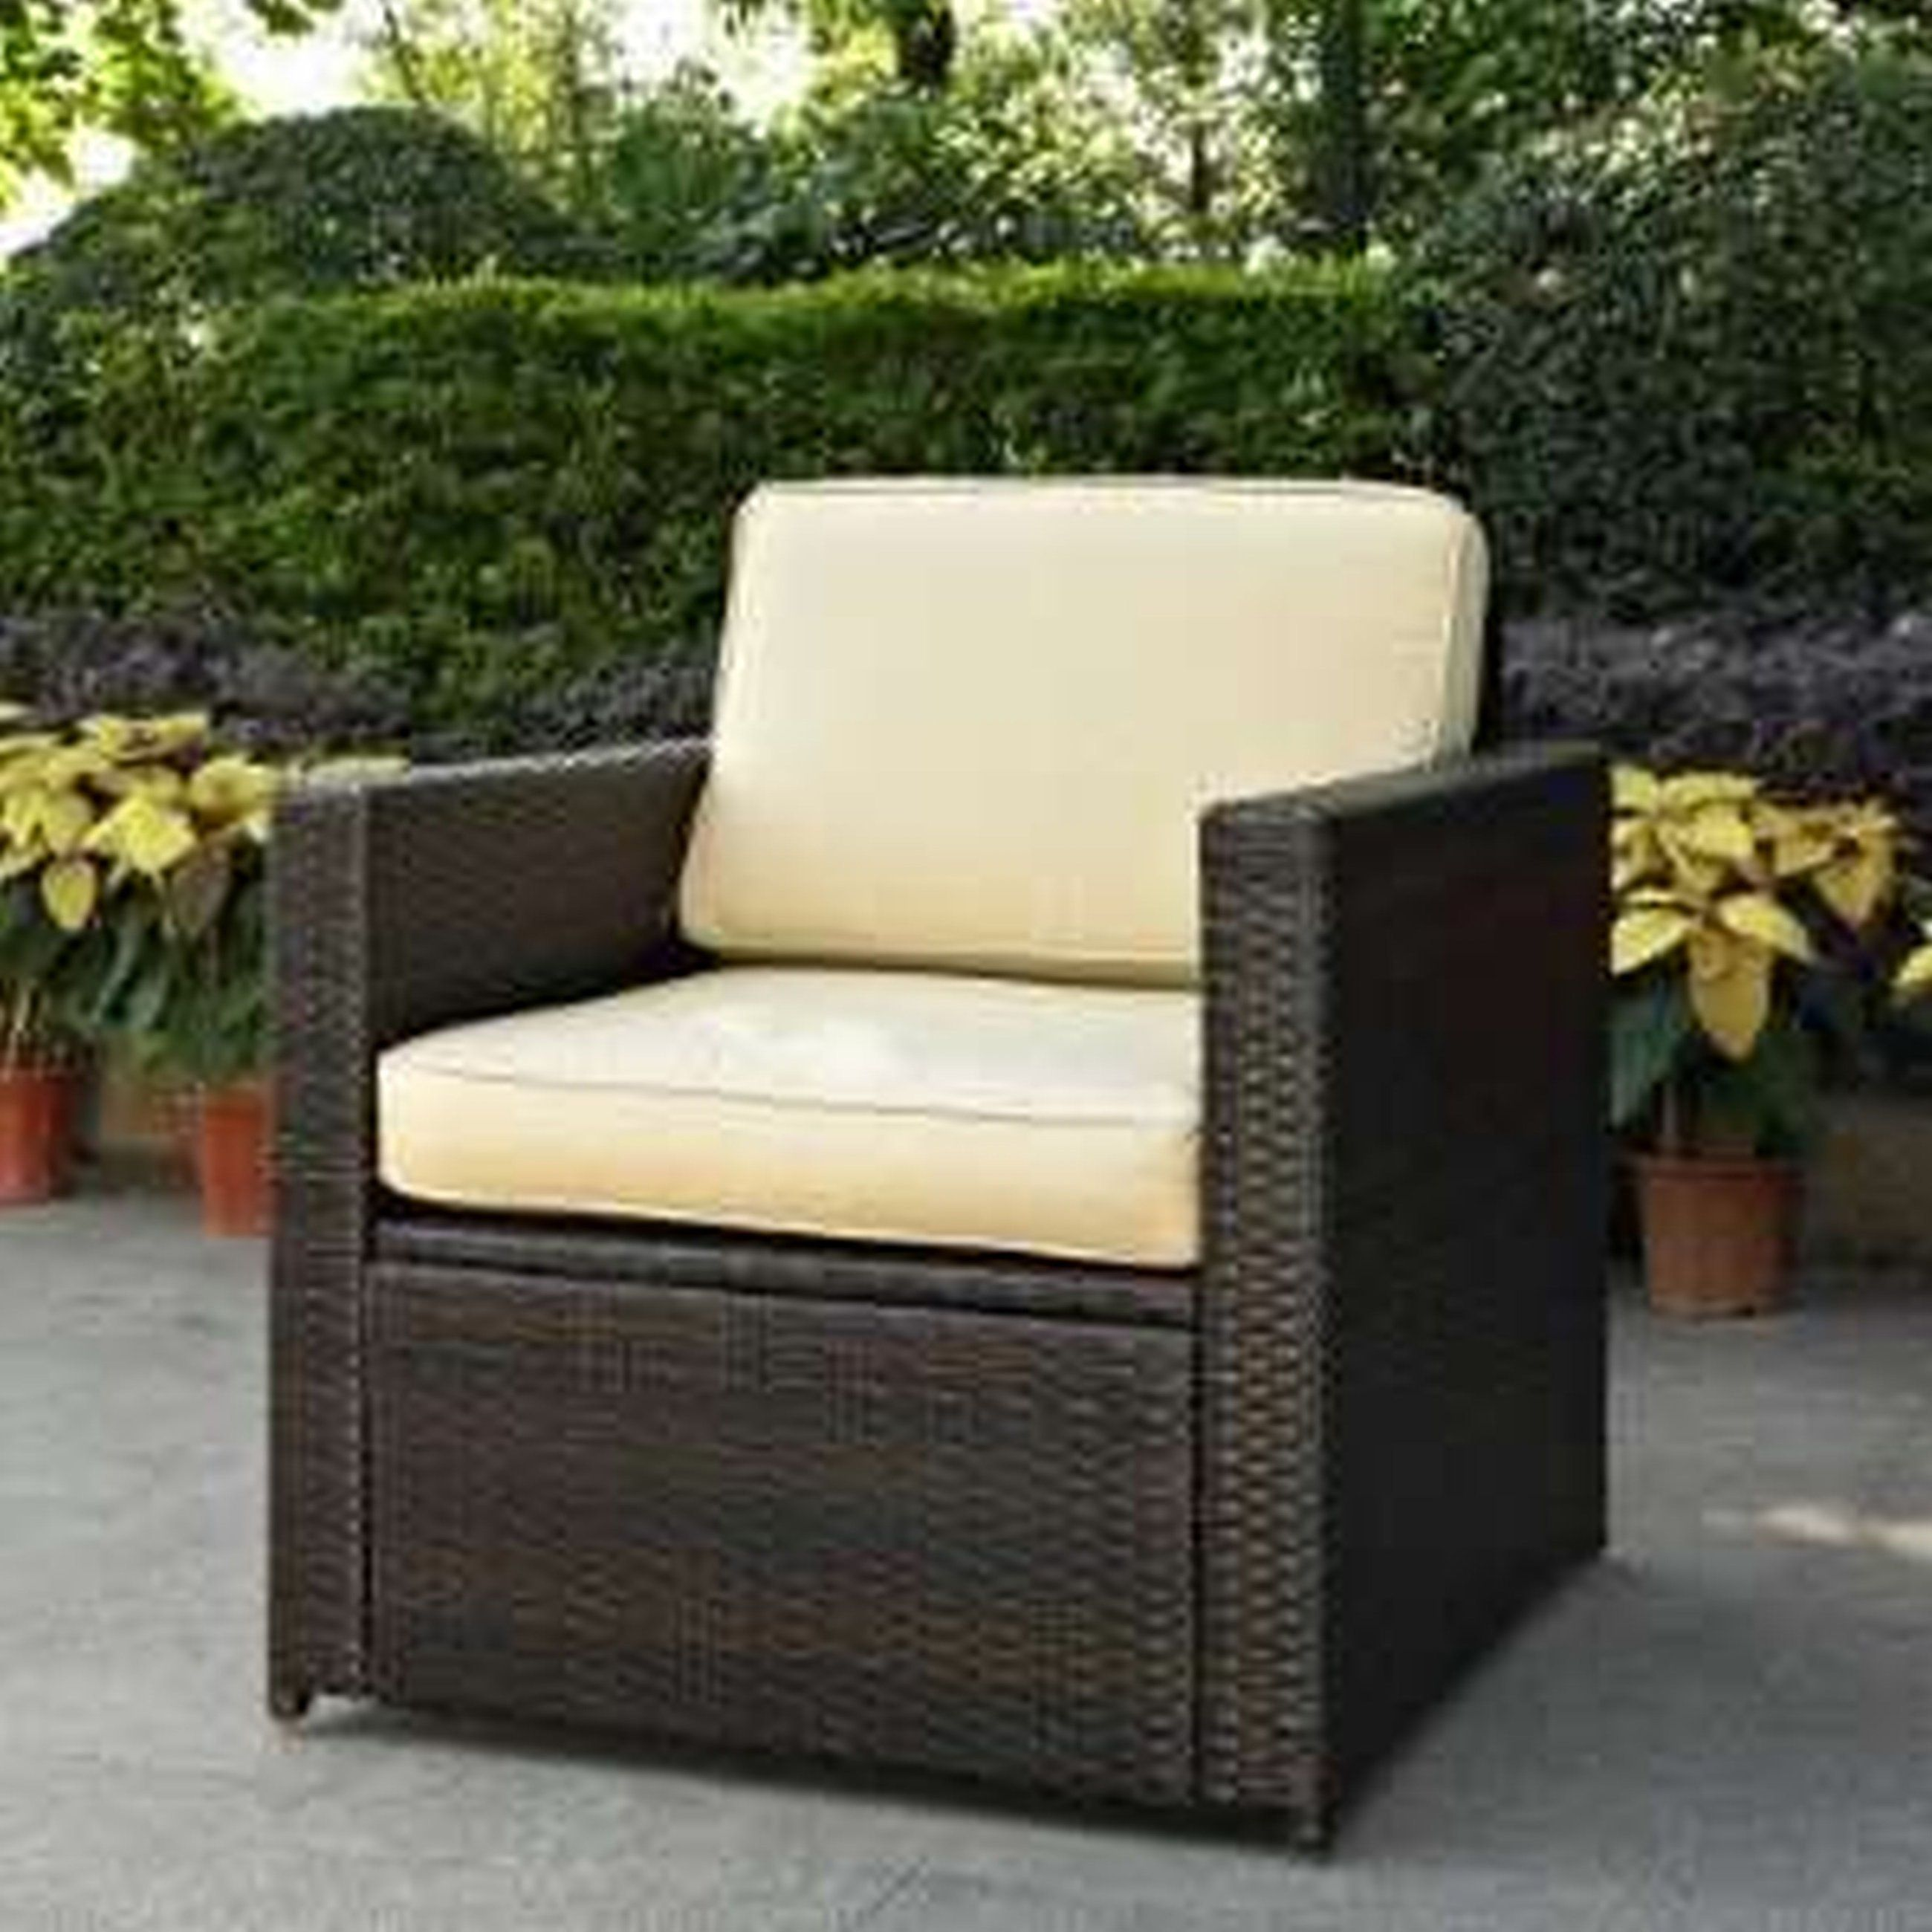 Garden Treasures Patio Furniture Replacement Cushions Wicker Chairs Outdoor Palmetto All Weather Armchair Black